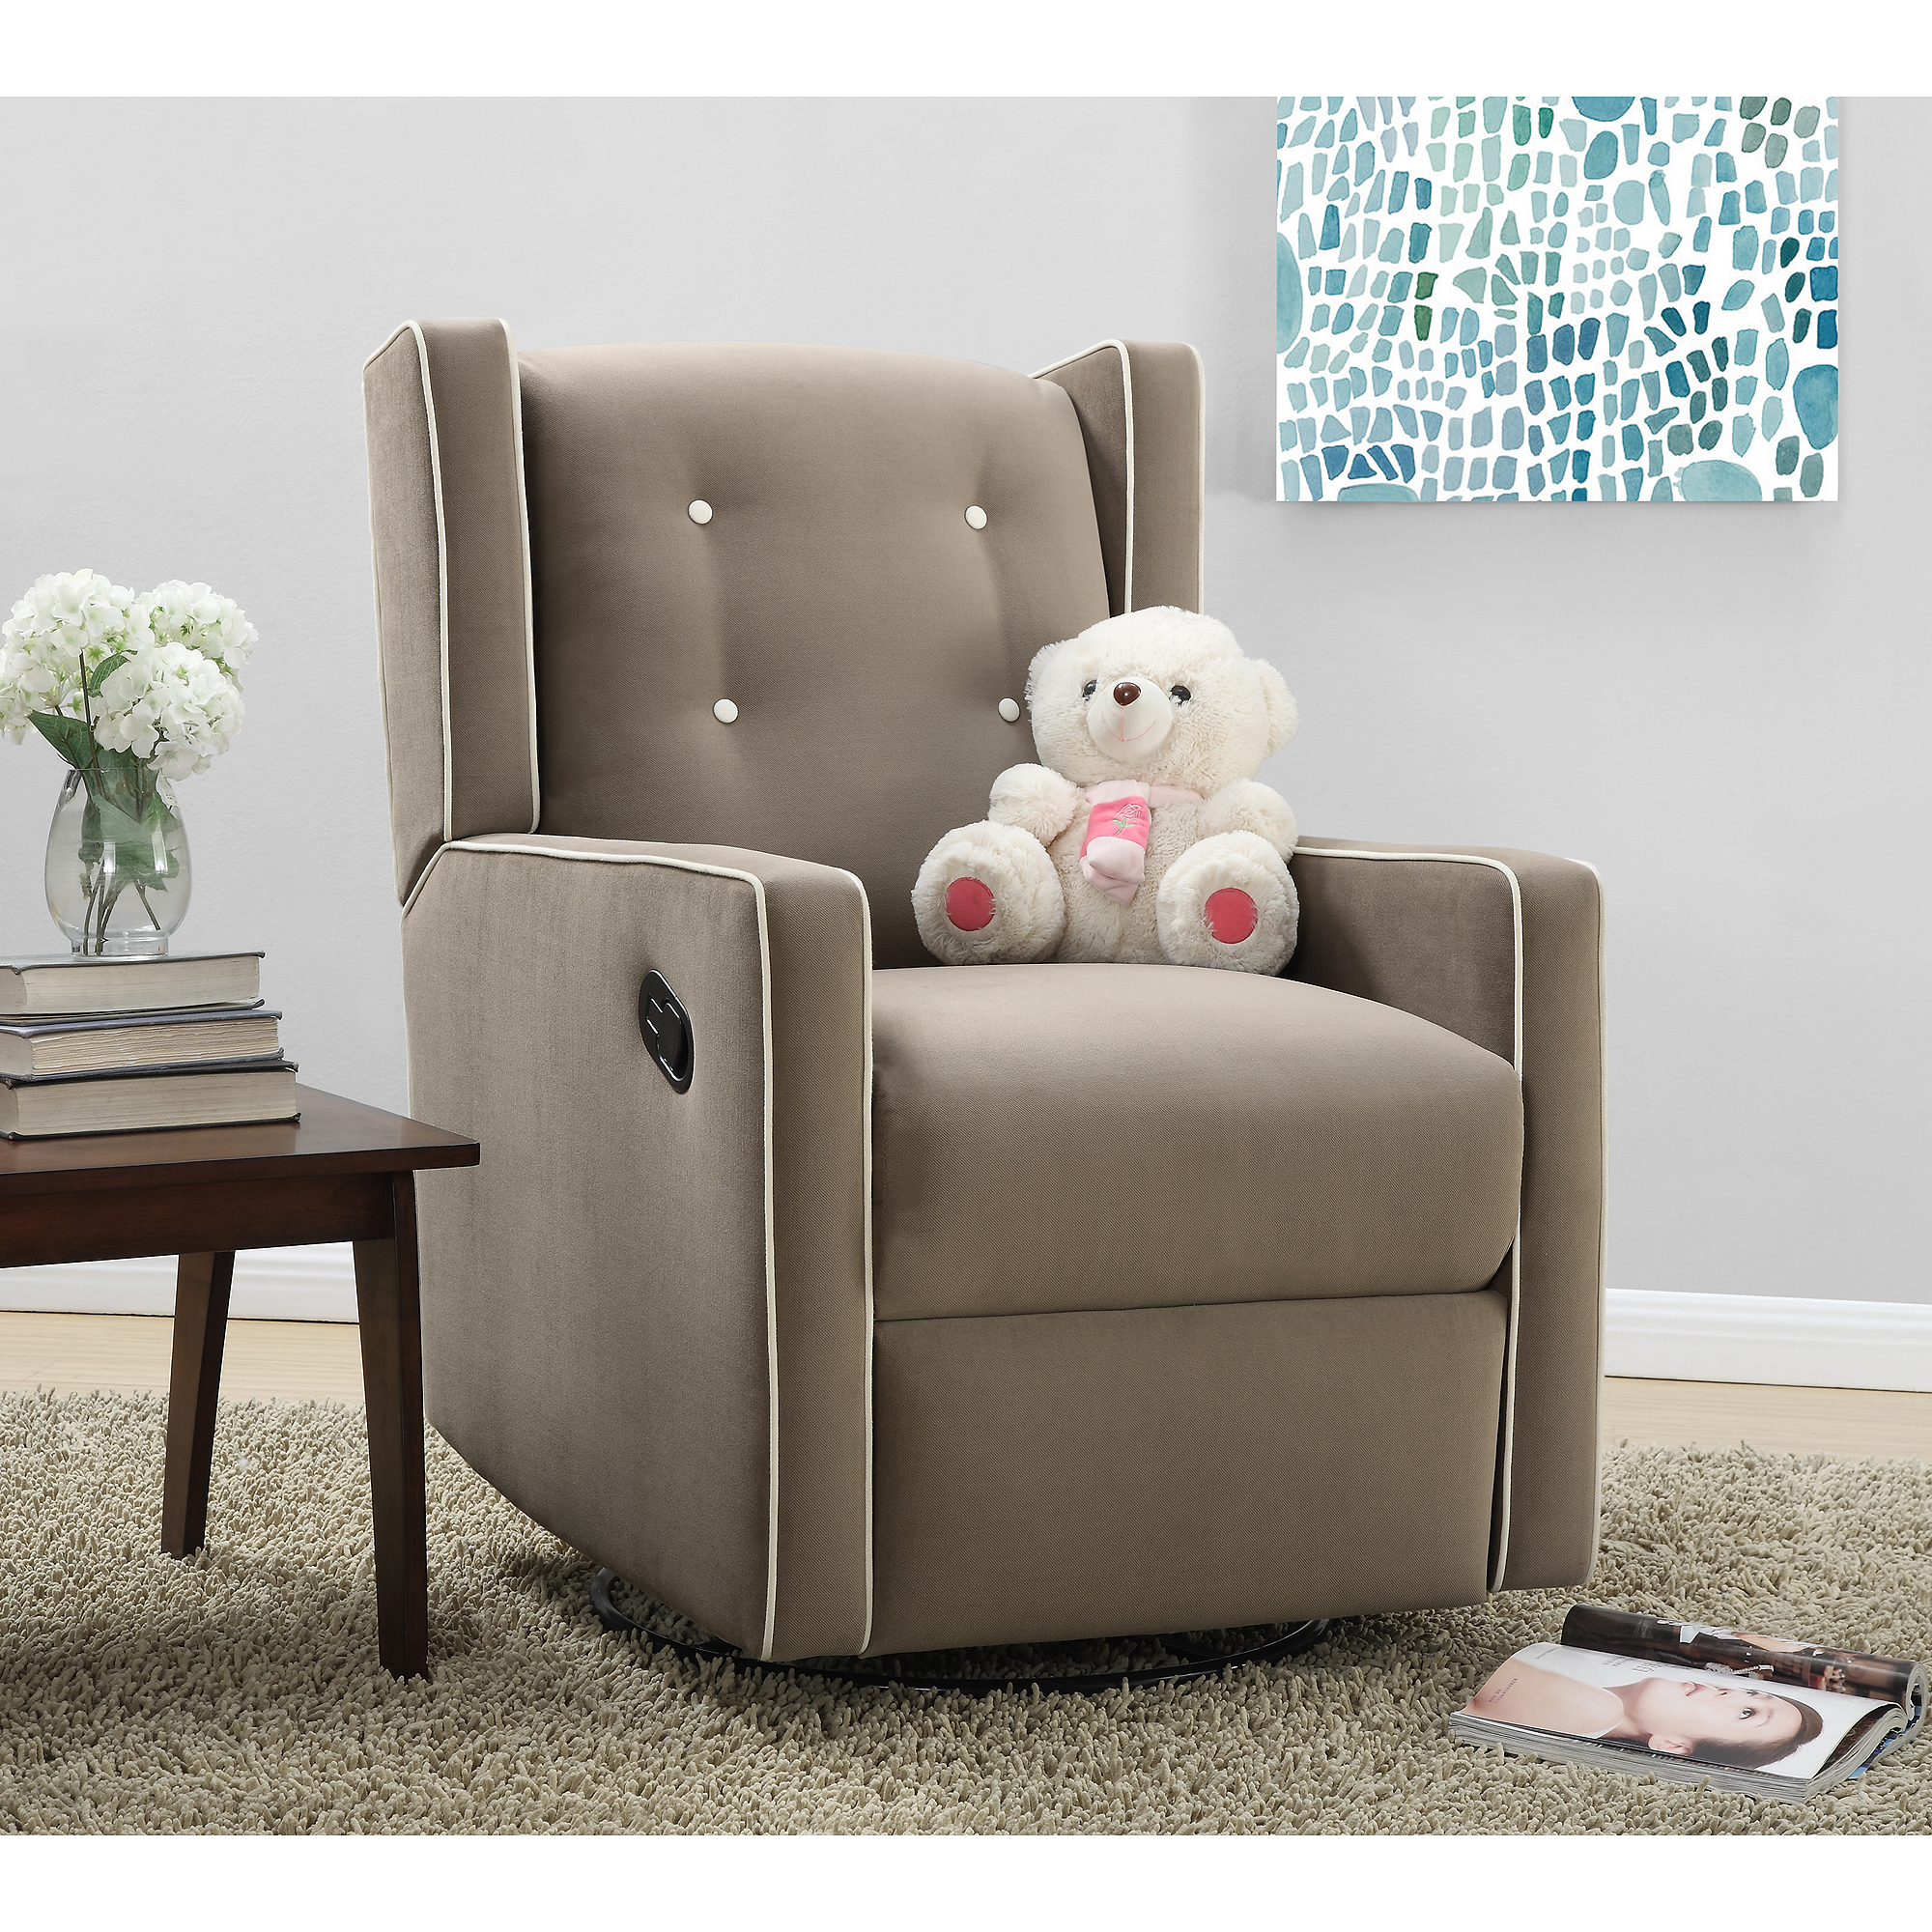 Baby Relax Mikayla Swivel Gliding Recliner Choose Your Color - Walmart.com : baby recliner - islam-shia.org